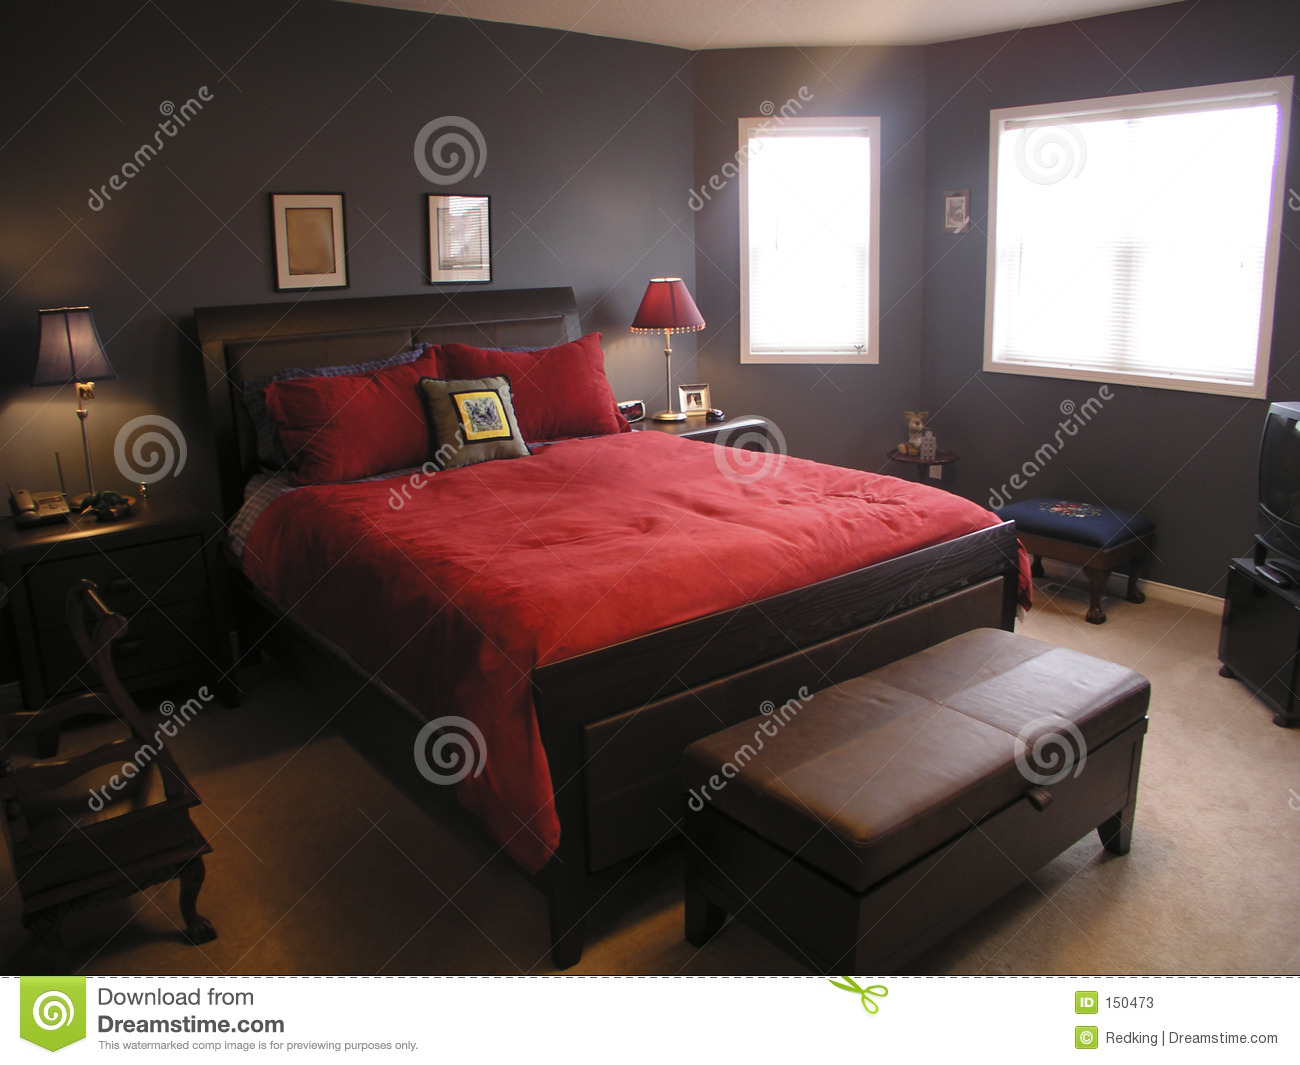 Master bedroom in red 01 stock photos image 150473 Master bedroom with red bedding